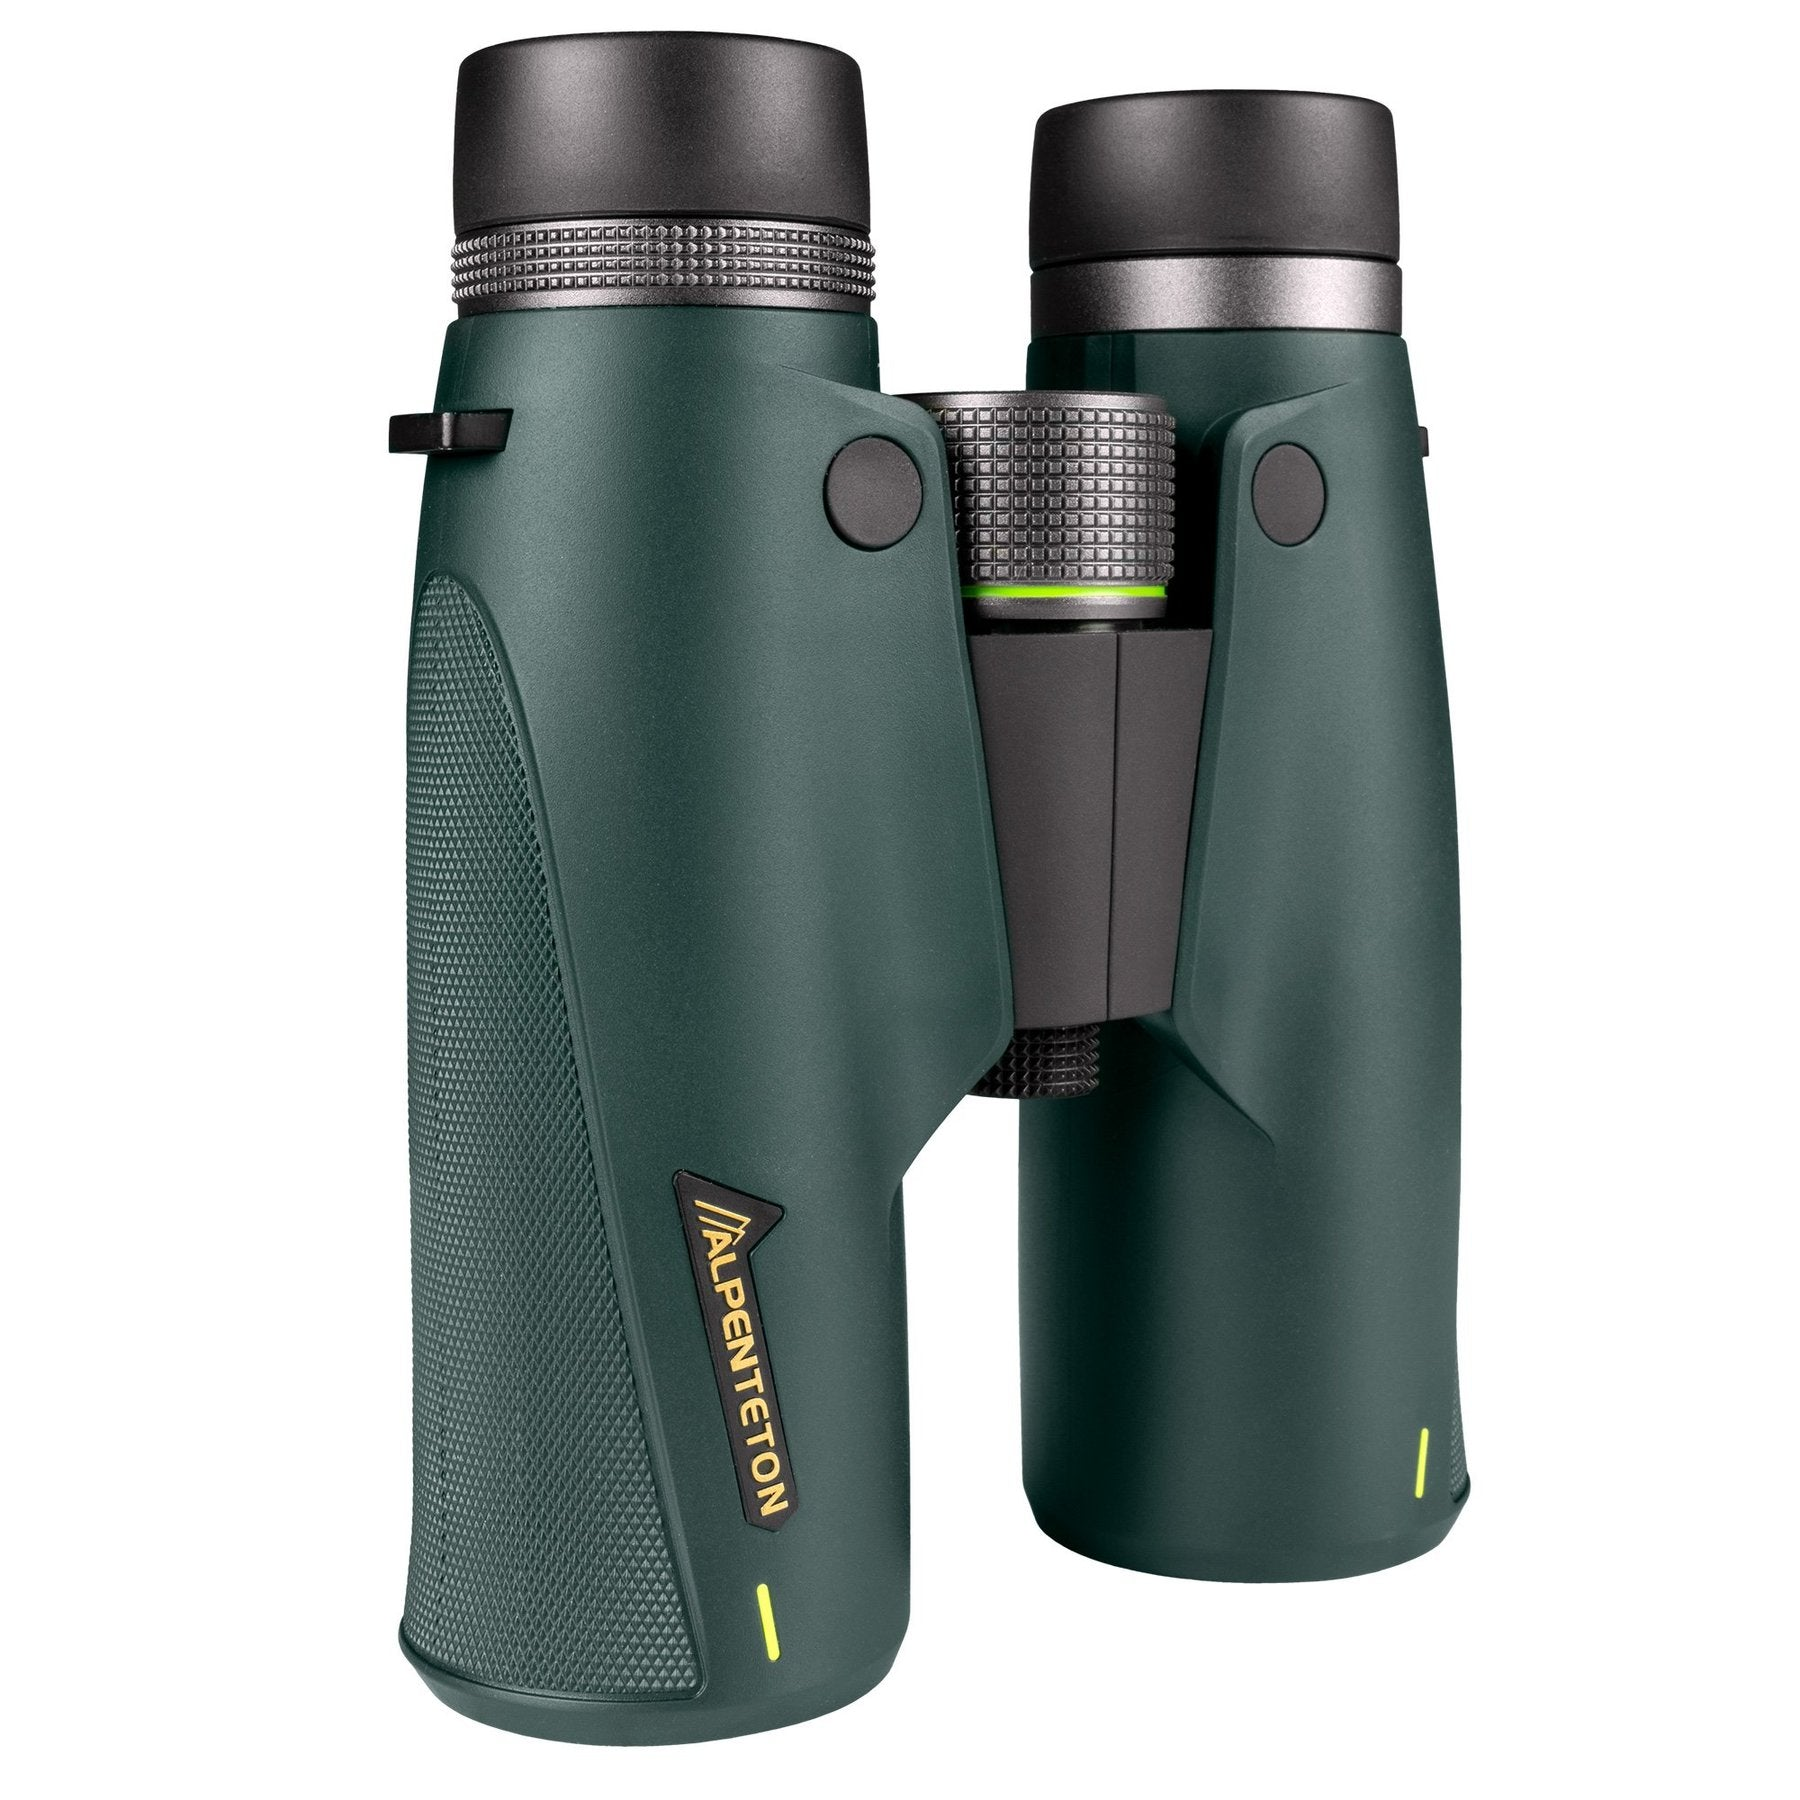 Alpen Teton 10x42mm Binoculars with Abbe Prism